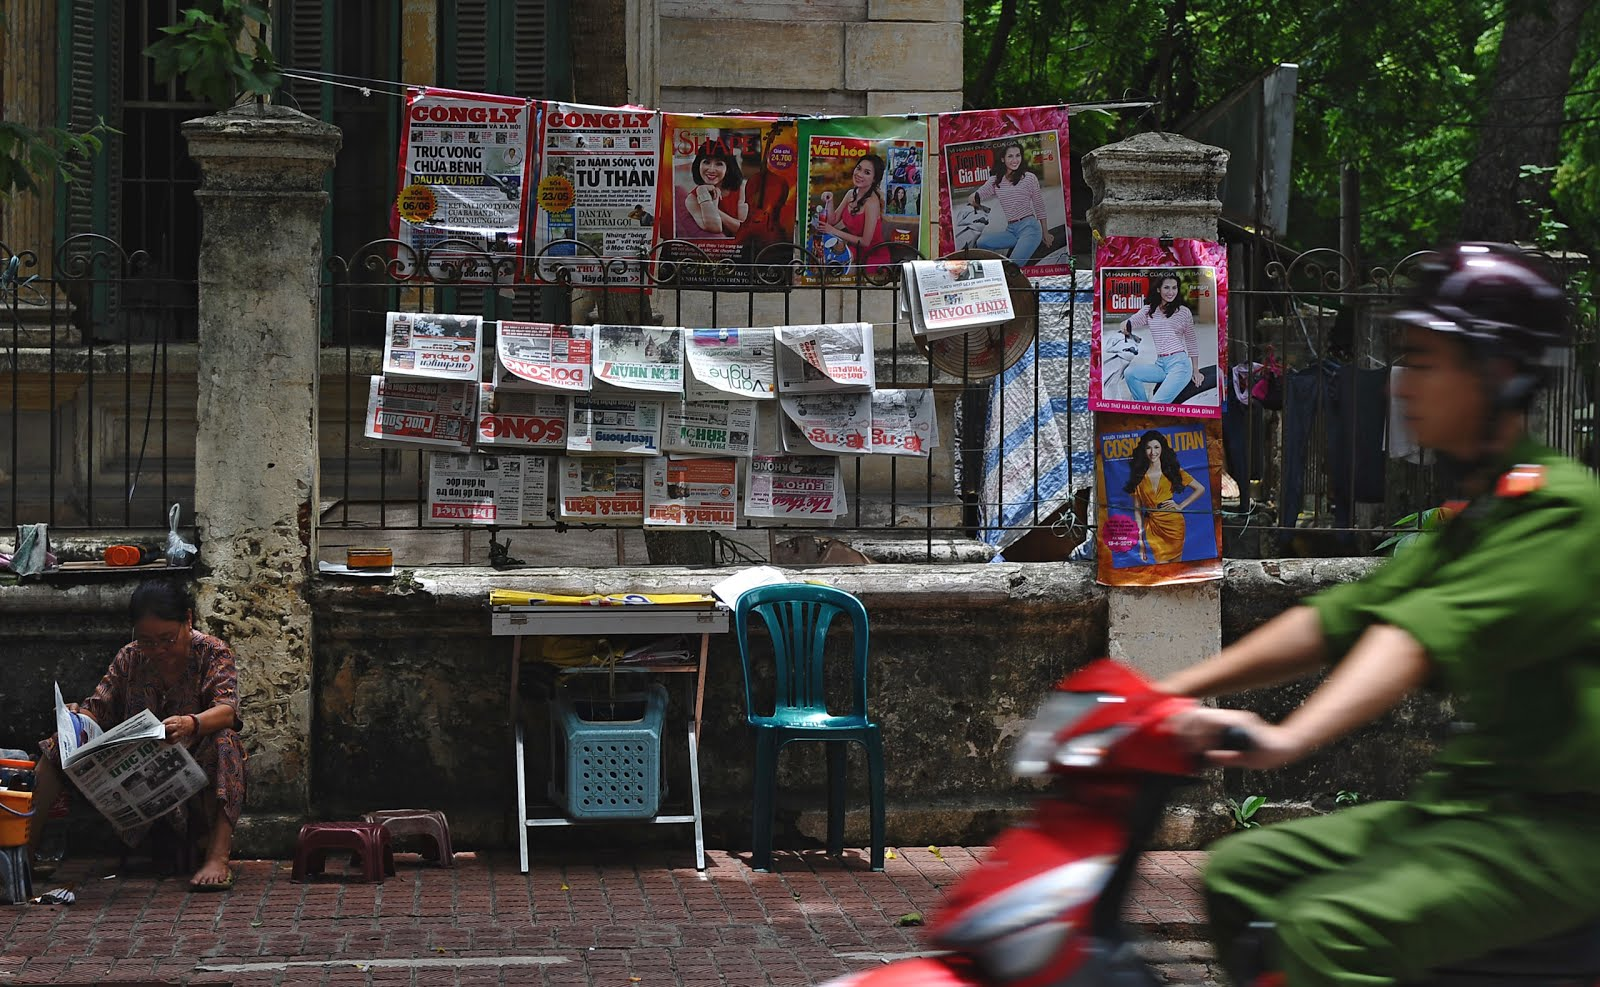 Reporters Without Borders labels Vietnam, Philippines worst for spreading disinformation